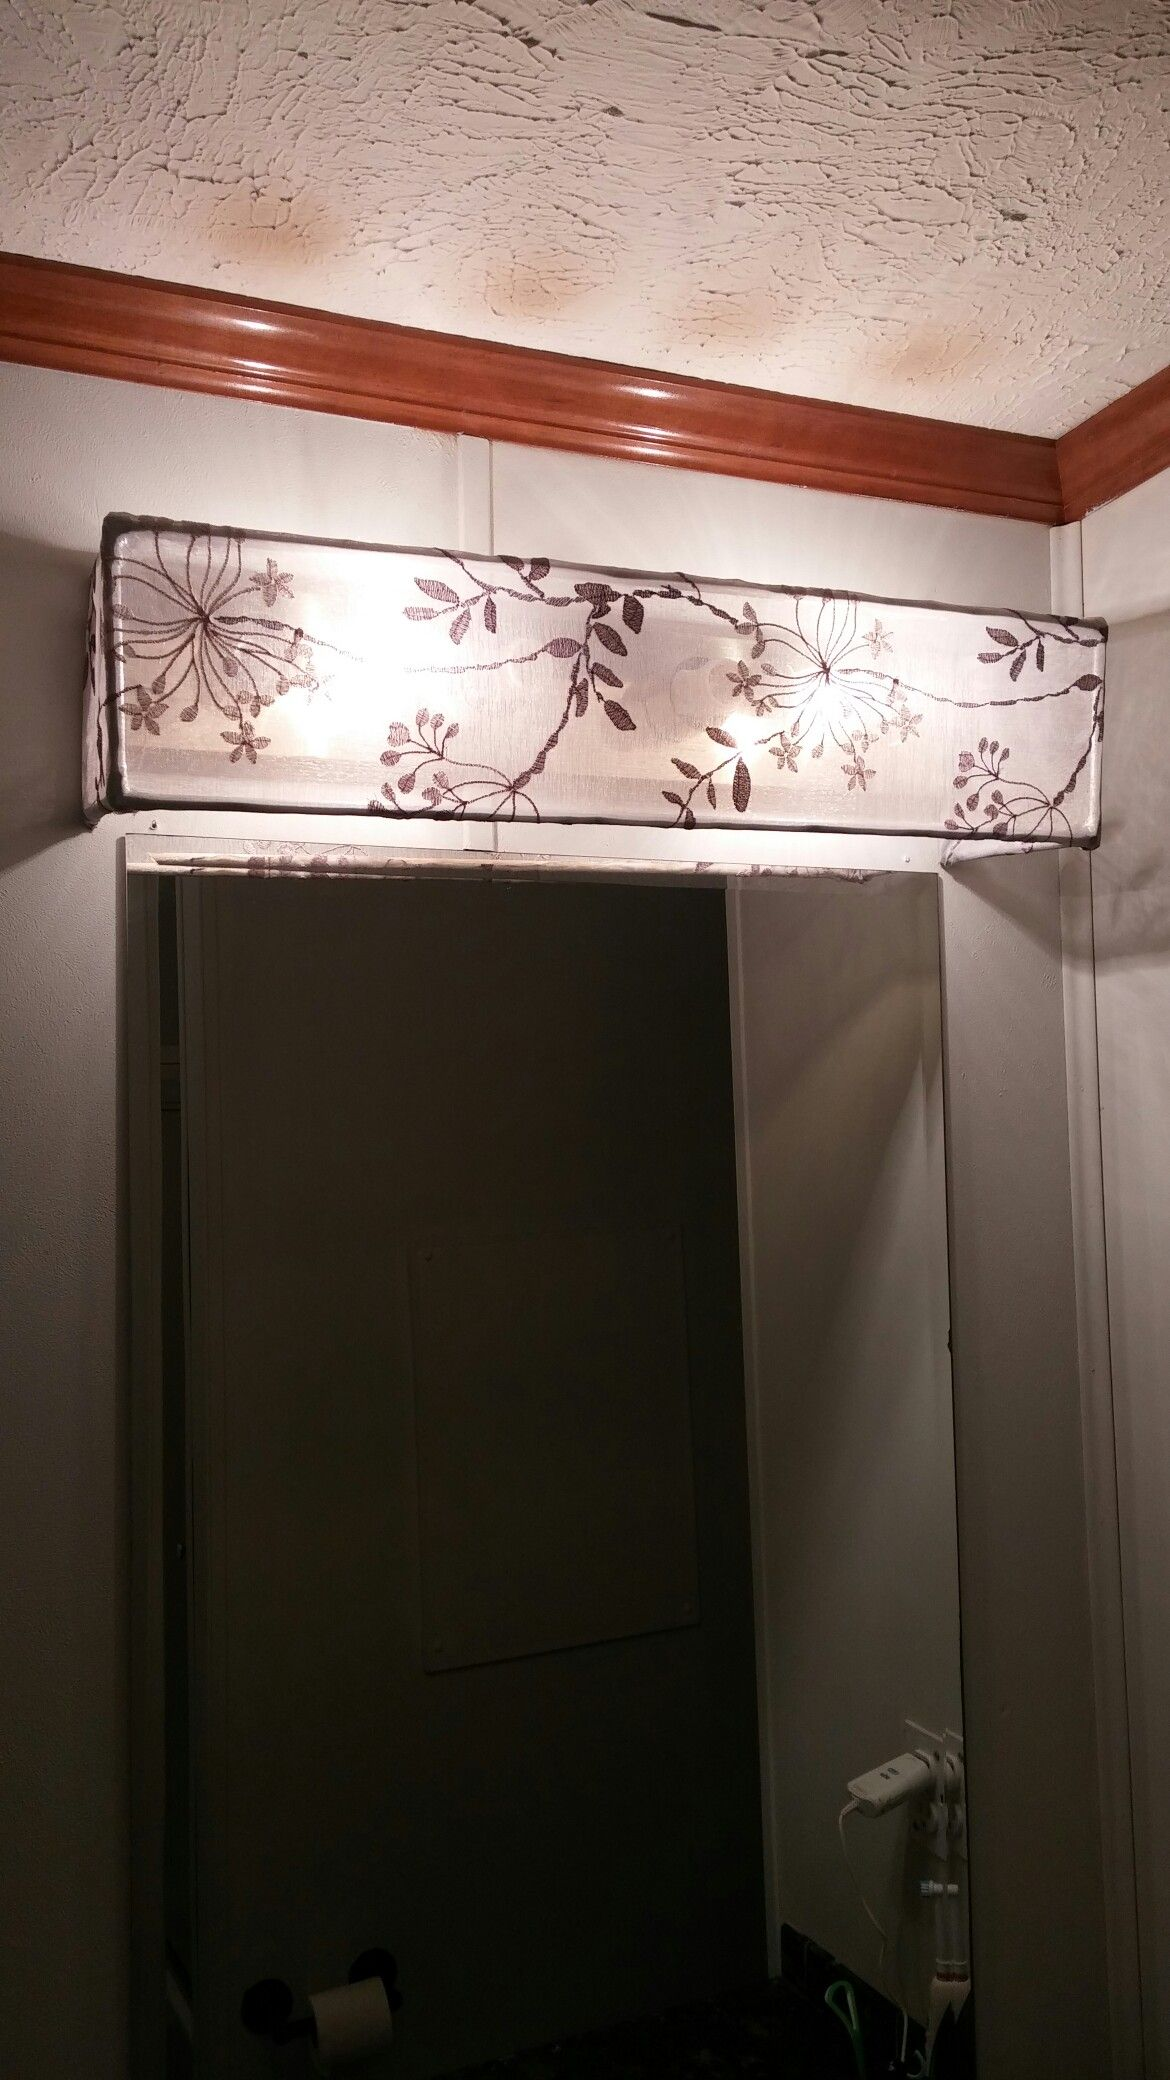 Diy Vanity Light Shade Dowel Rods And A Curtain Sheer Hot Glued